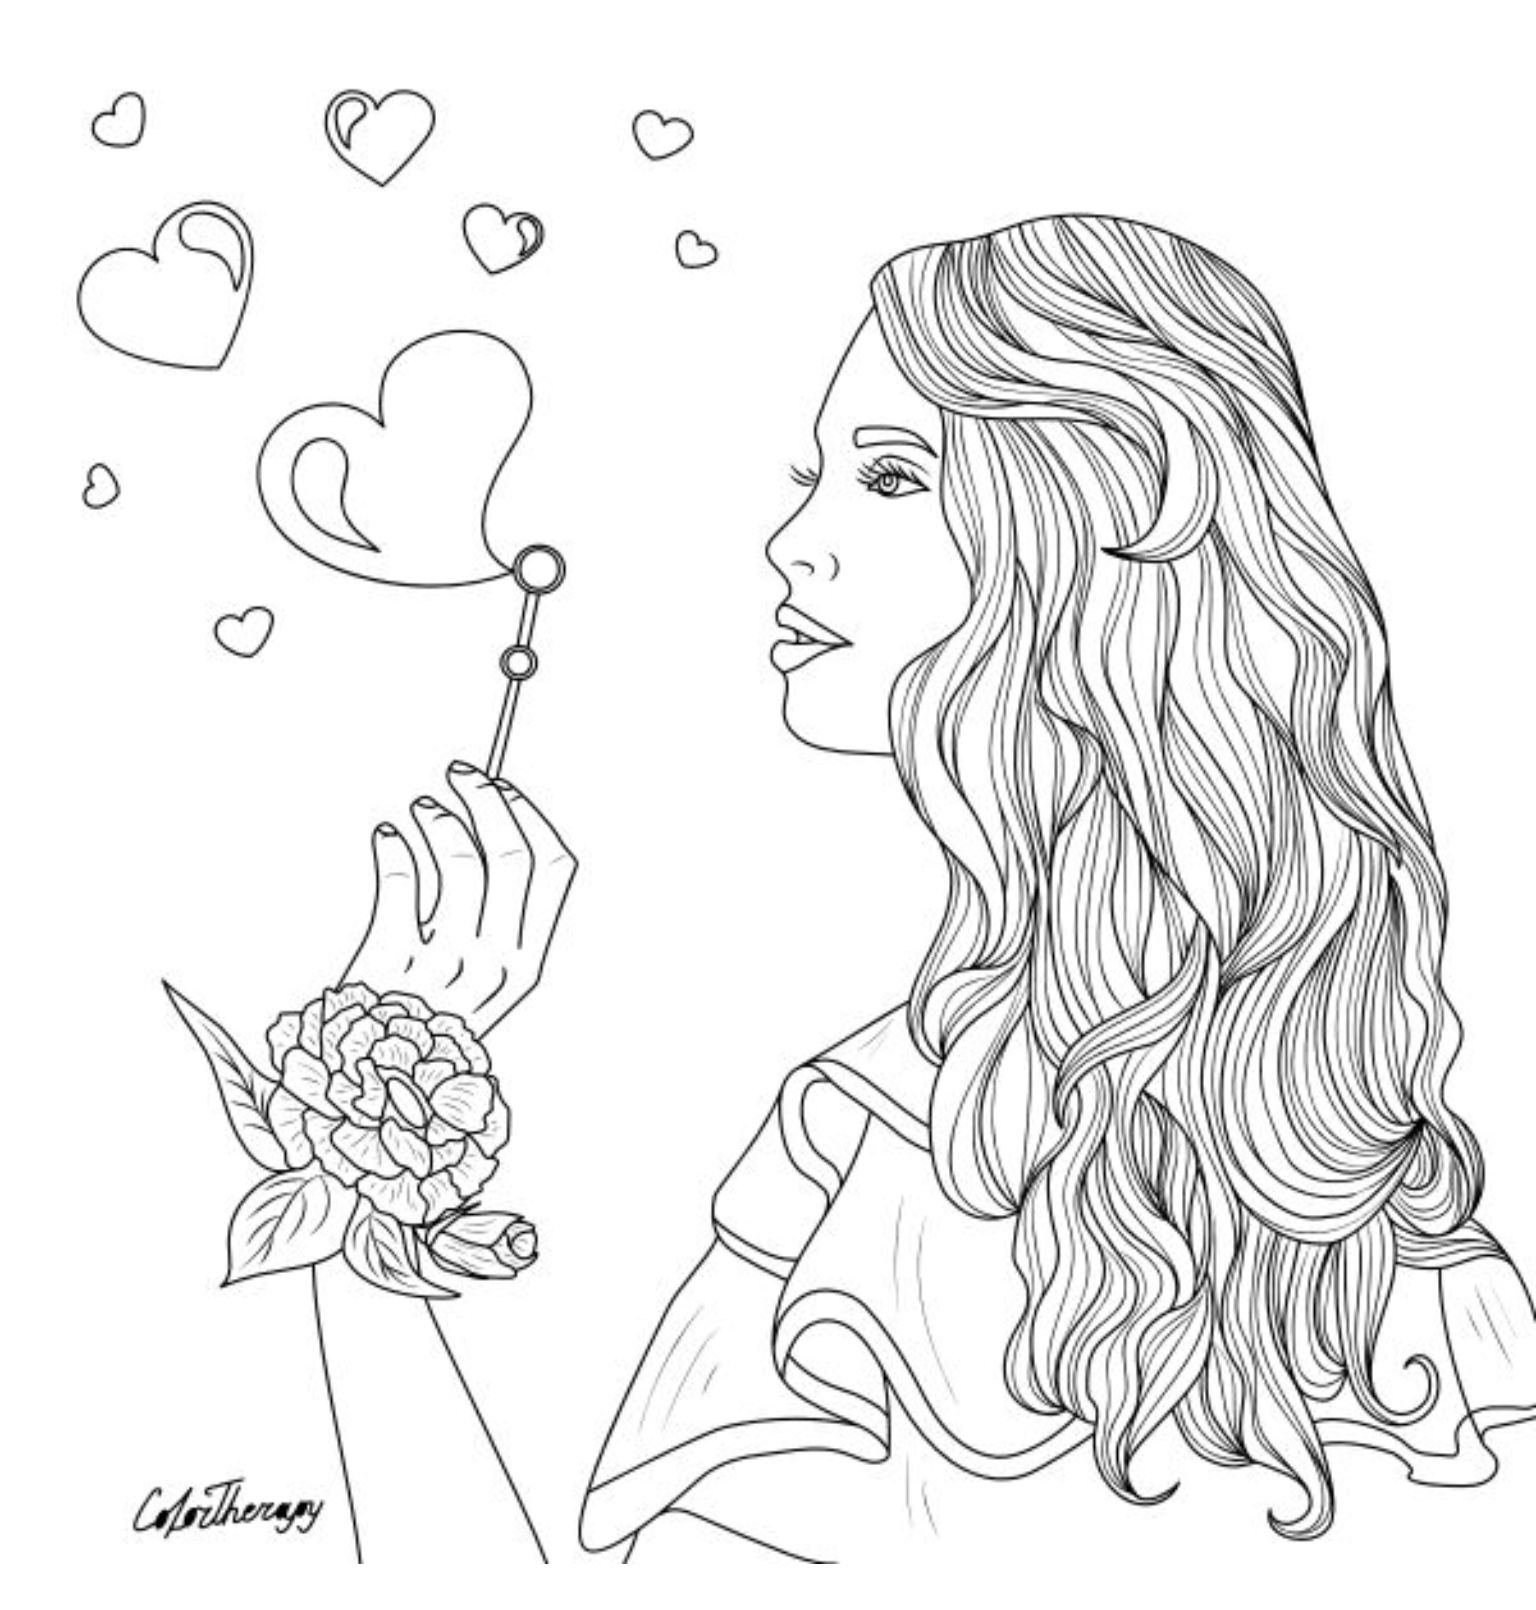 The Sneakpeek For The Next Gift Of The Day Tomorrow Do You Like This One Woman Mak Abstract Coloring Pages Monster Coloring Pages Fairy Coloring Pages